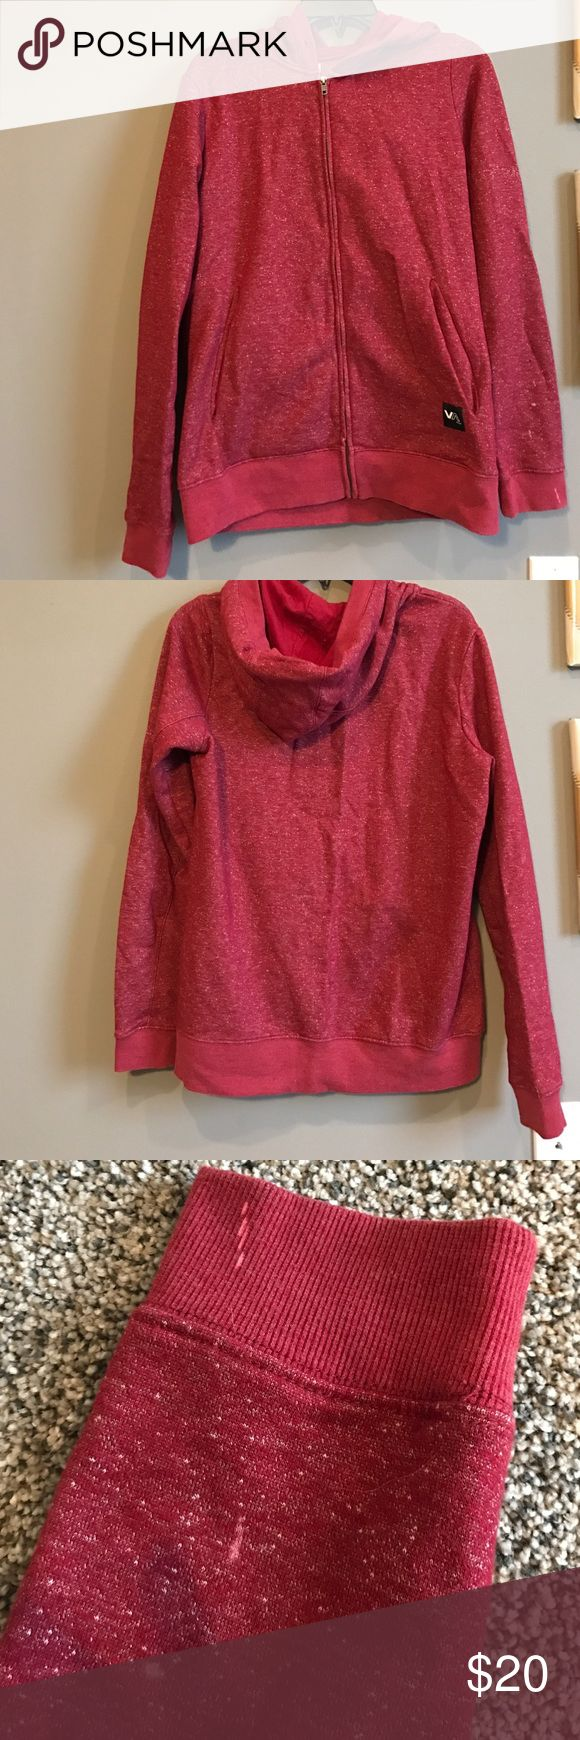 RVCA red zip up sweatshirt Hooded sweatshirt zip up. See all pics. Missing hoodie string and little bleach stains on left arm RVCA Jackets & Coats